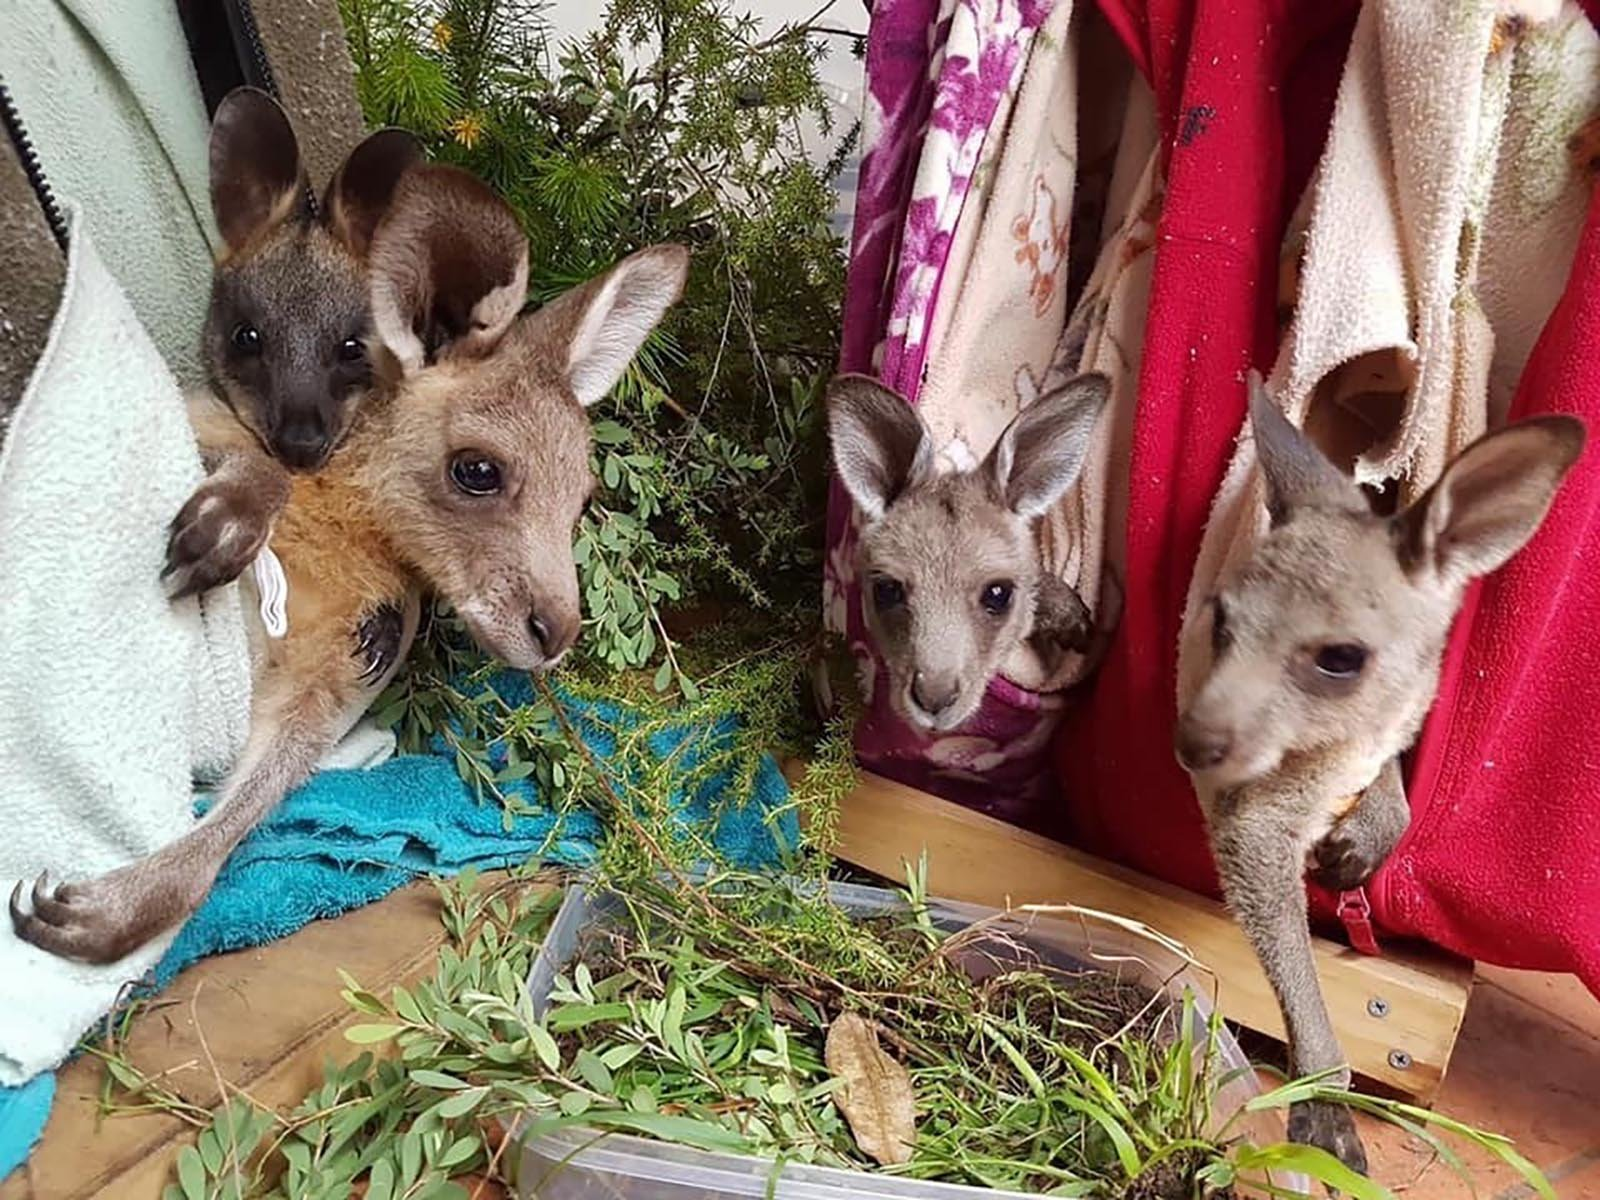 Orphaned kangaroos and koalas